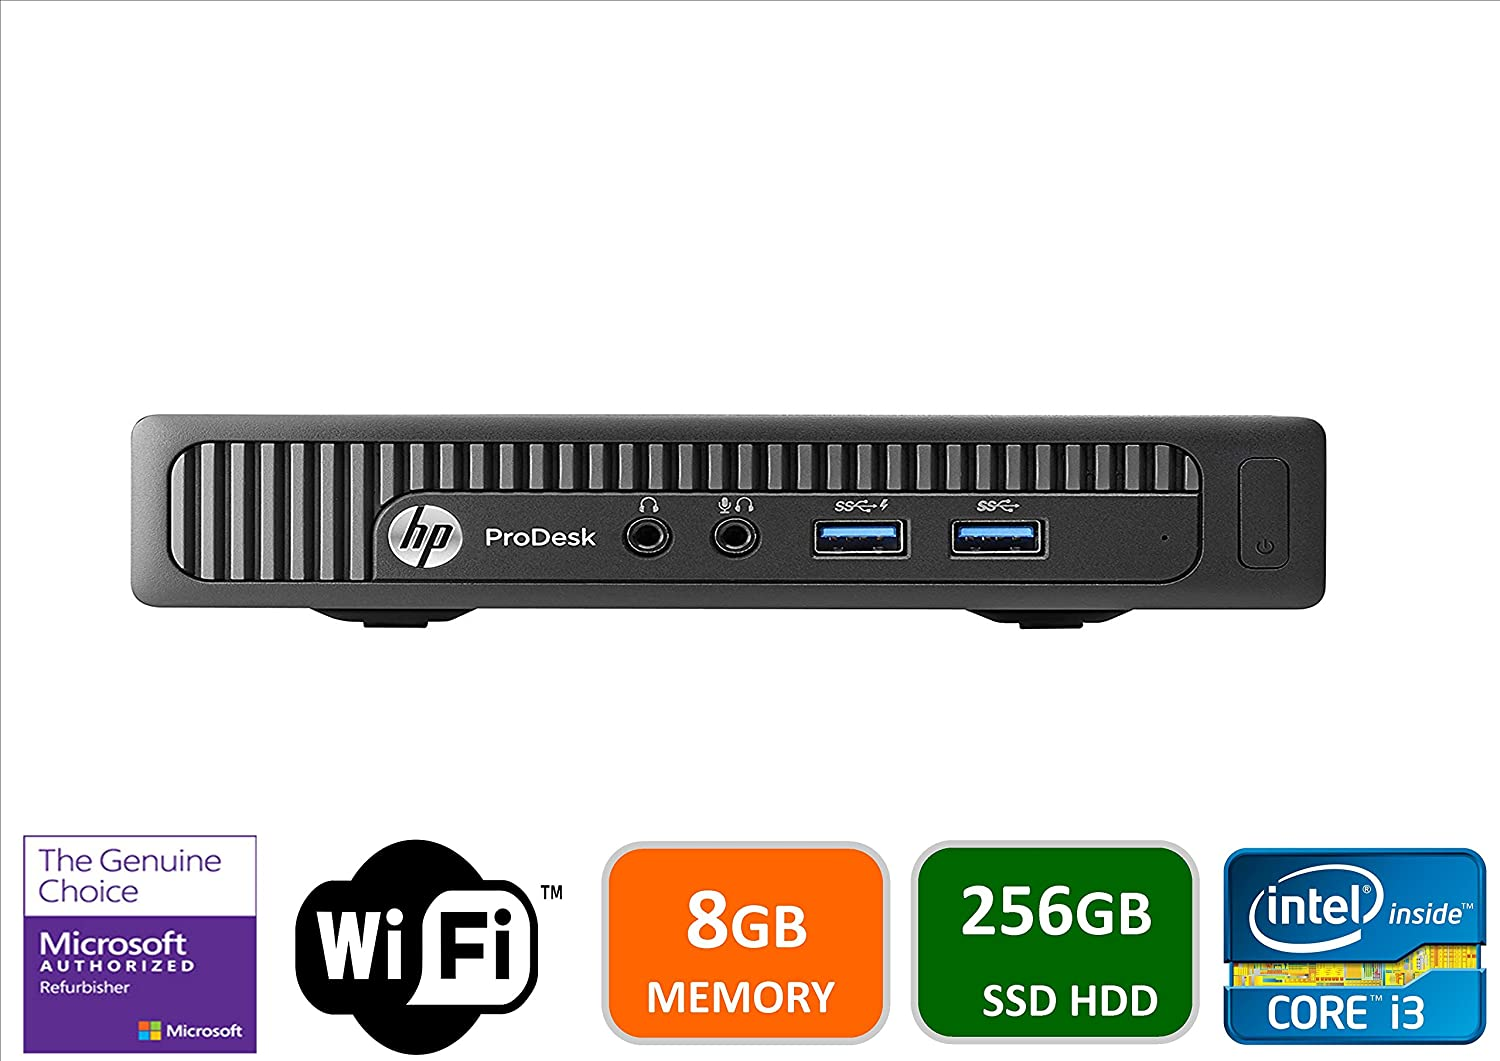 HP 600 G1 Micro Computer Mini Tower PC (Intel Quad Core i3-4160T, 8GB DDR3 Ram, 256GB Solid State SSD, WIFI, VGA, USB 3.0) Win 10 Pro (Renewed)